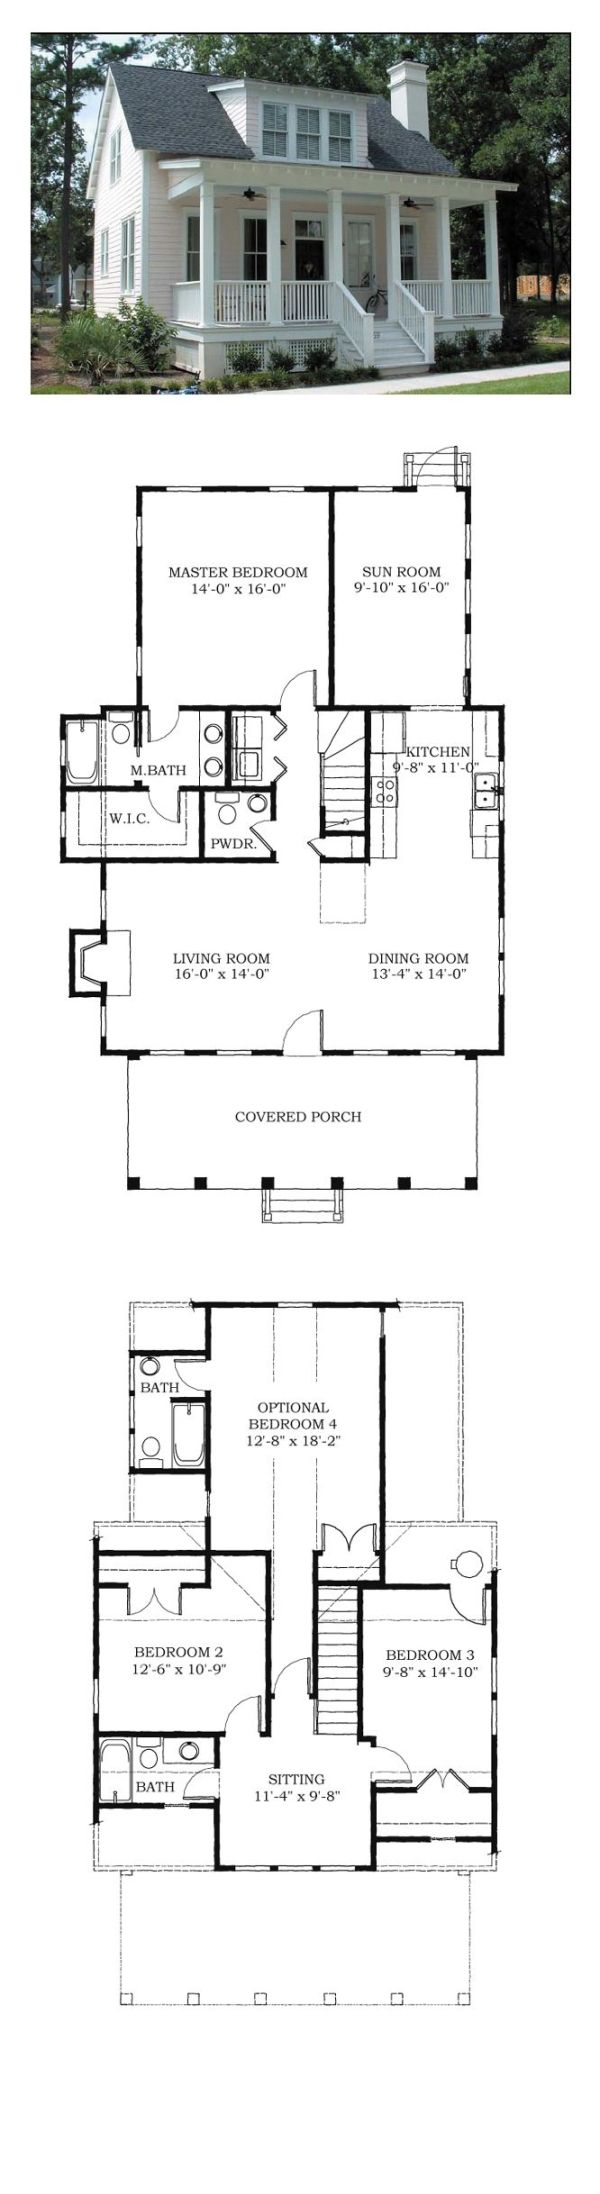 Best Master Bedroom Plans Ideas On Pinterest Master Bedroom